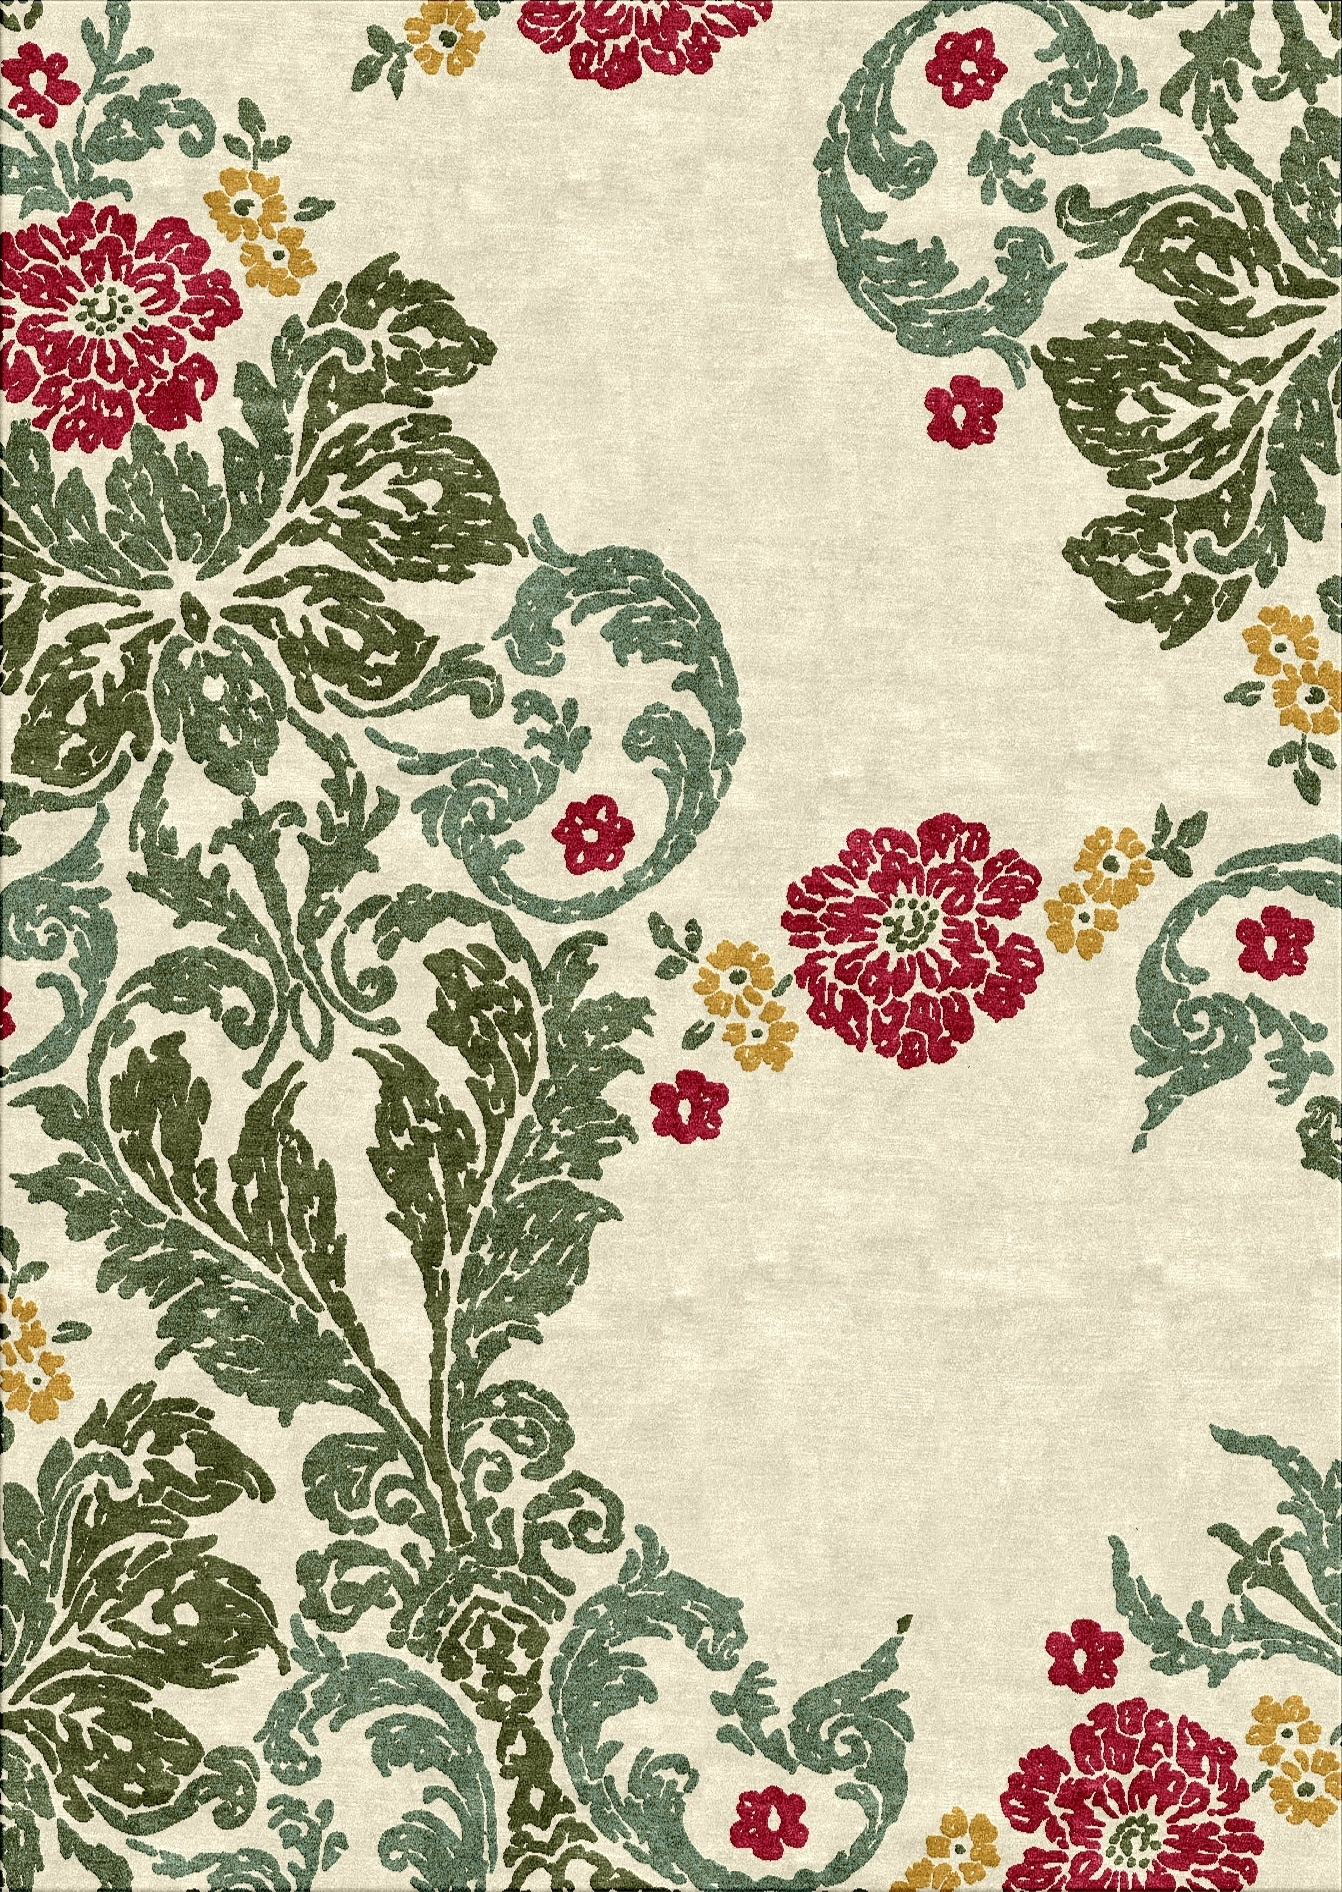 Florentine Tapestryflorence Broadhurst For Cadrys | Florentine Intended For Most Recently Released Florence Broadhurst Fabric Wall Art (View 14 of 15)